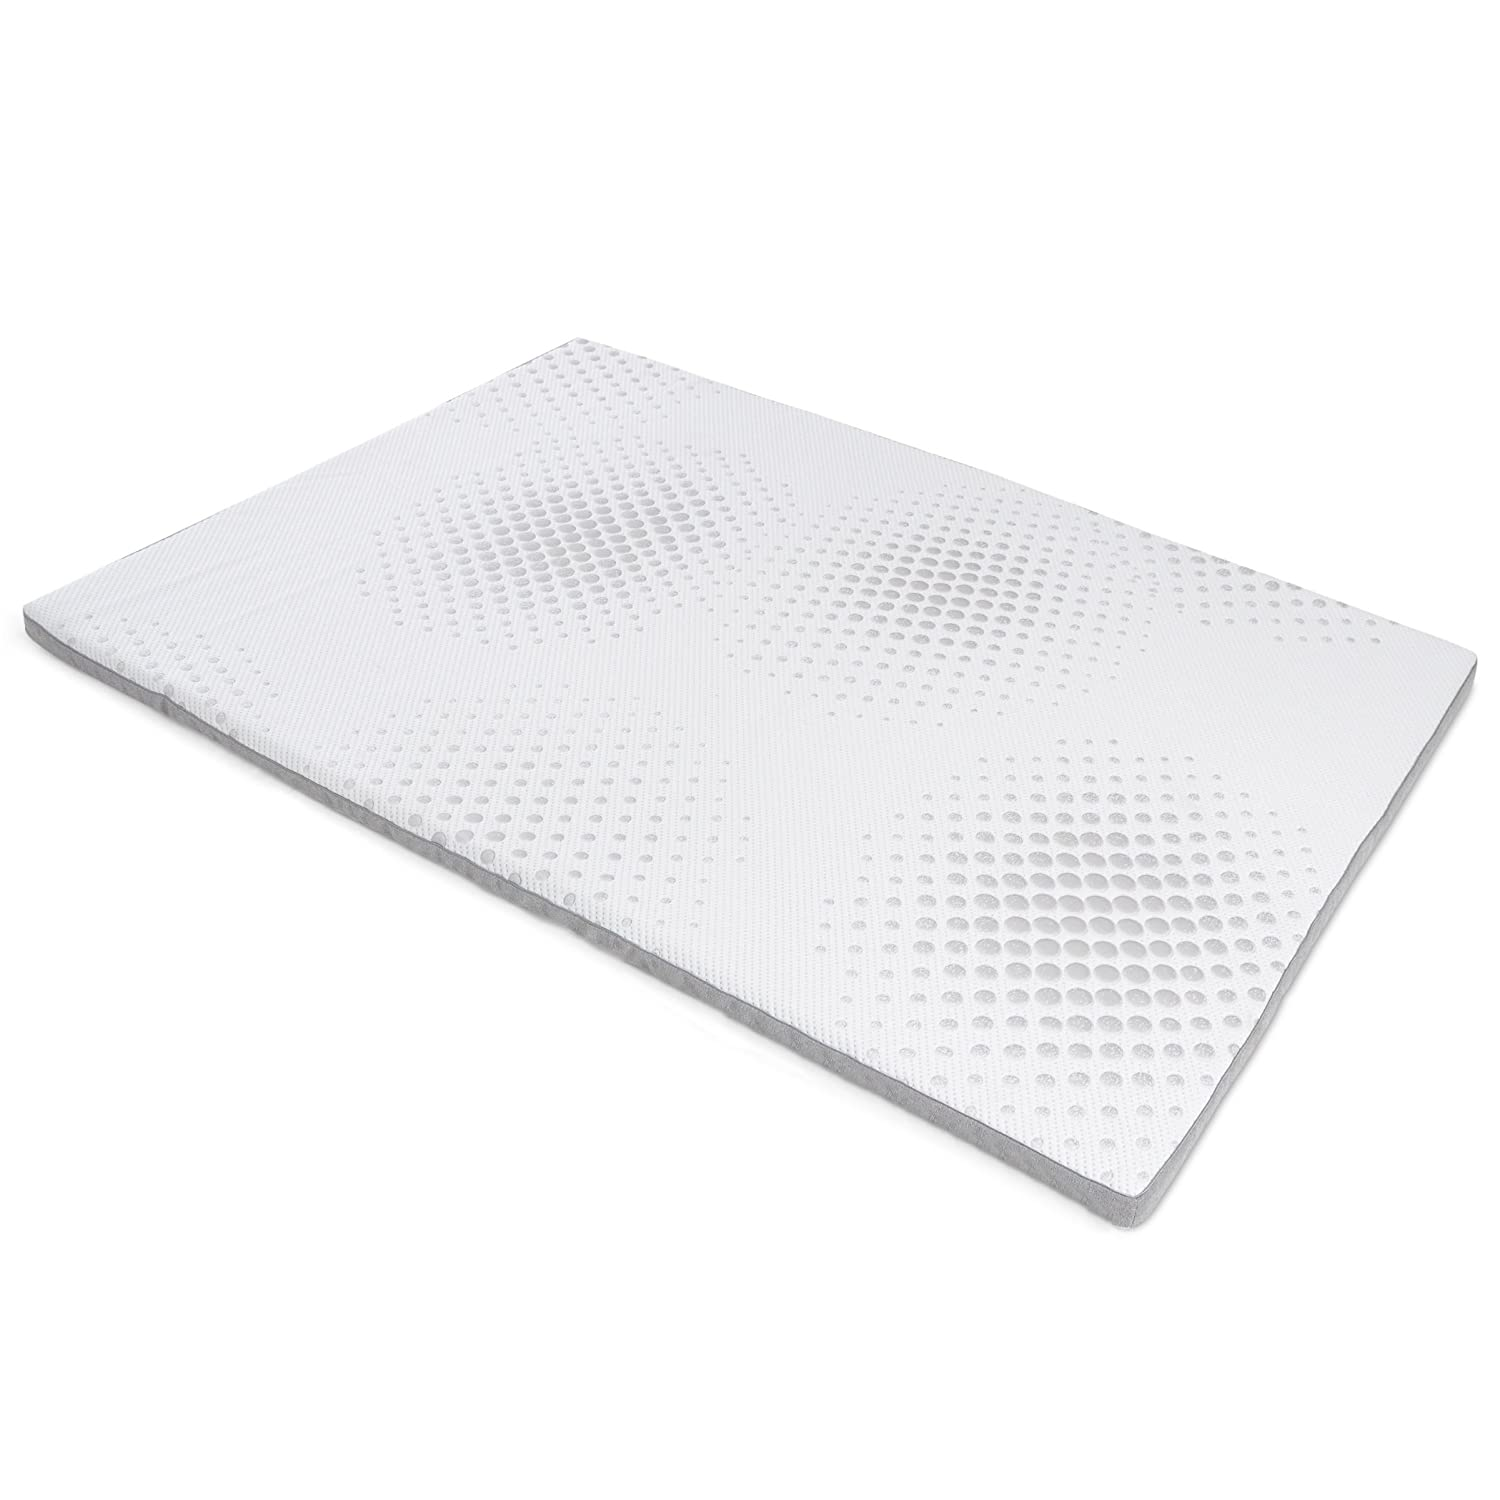 """Milliard 2-Inch Gel Memory Foam Mattress Topper - Featuring a Removable Washable Soft Bamboo Cover - Twin - 73""""x37""""x2"""